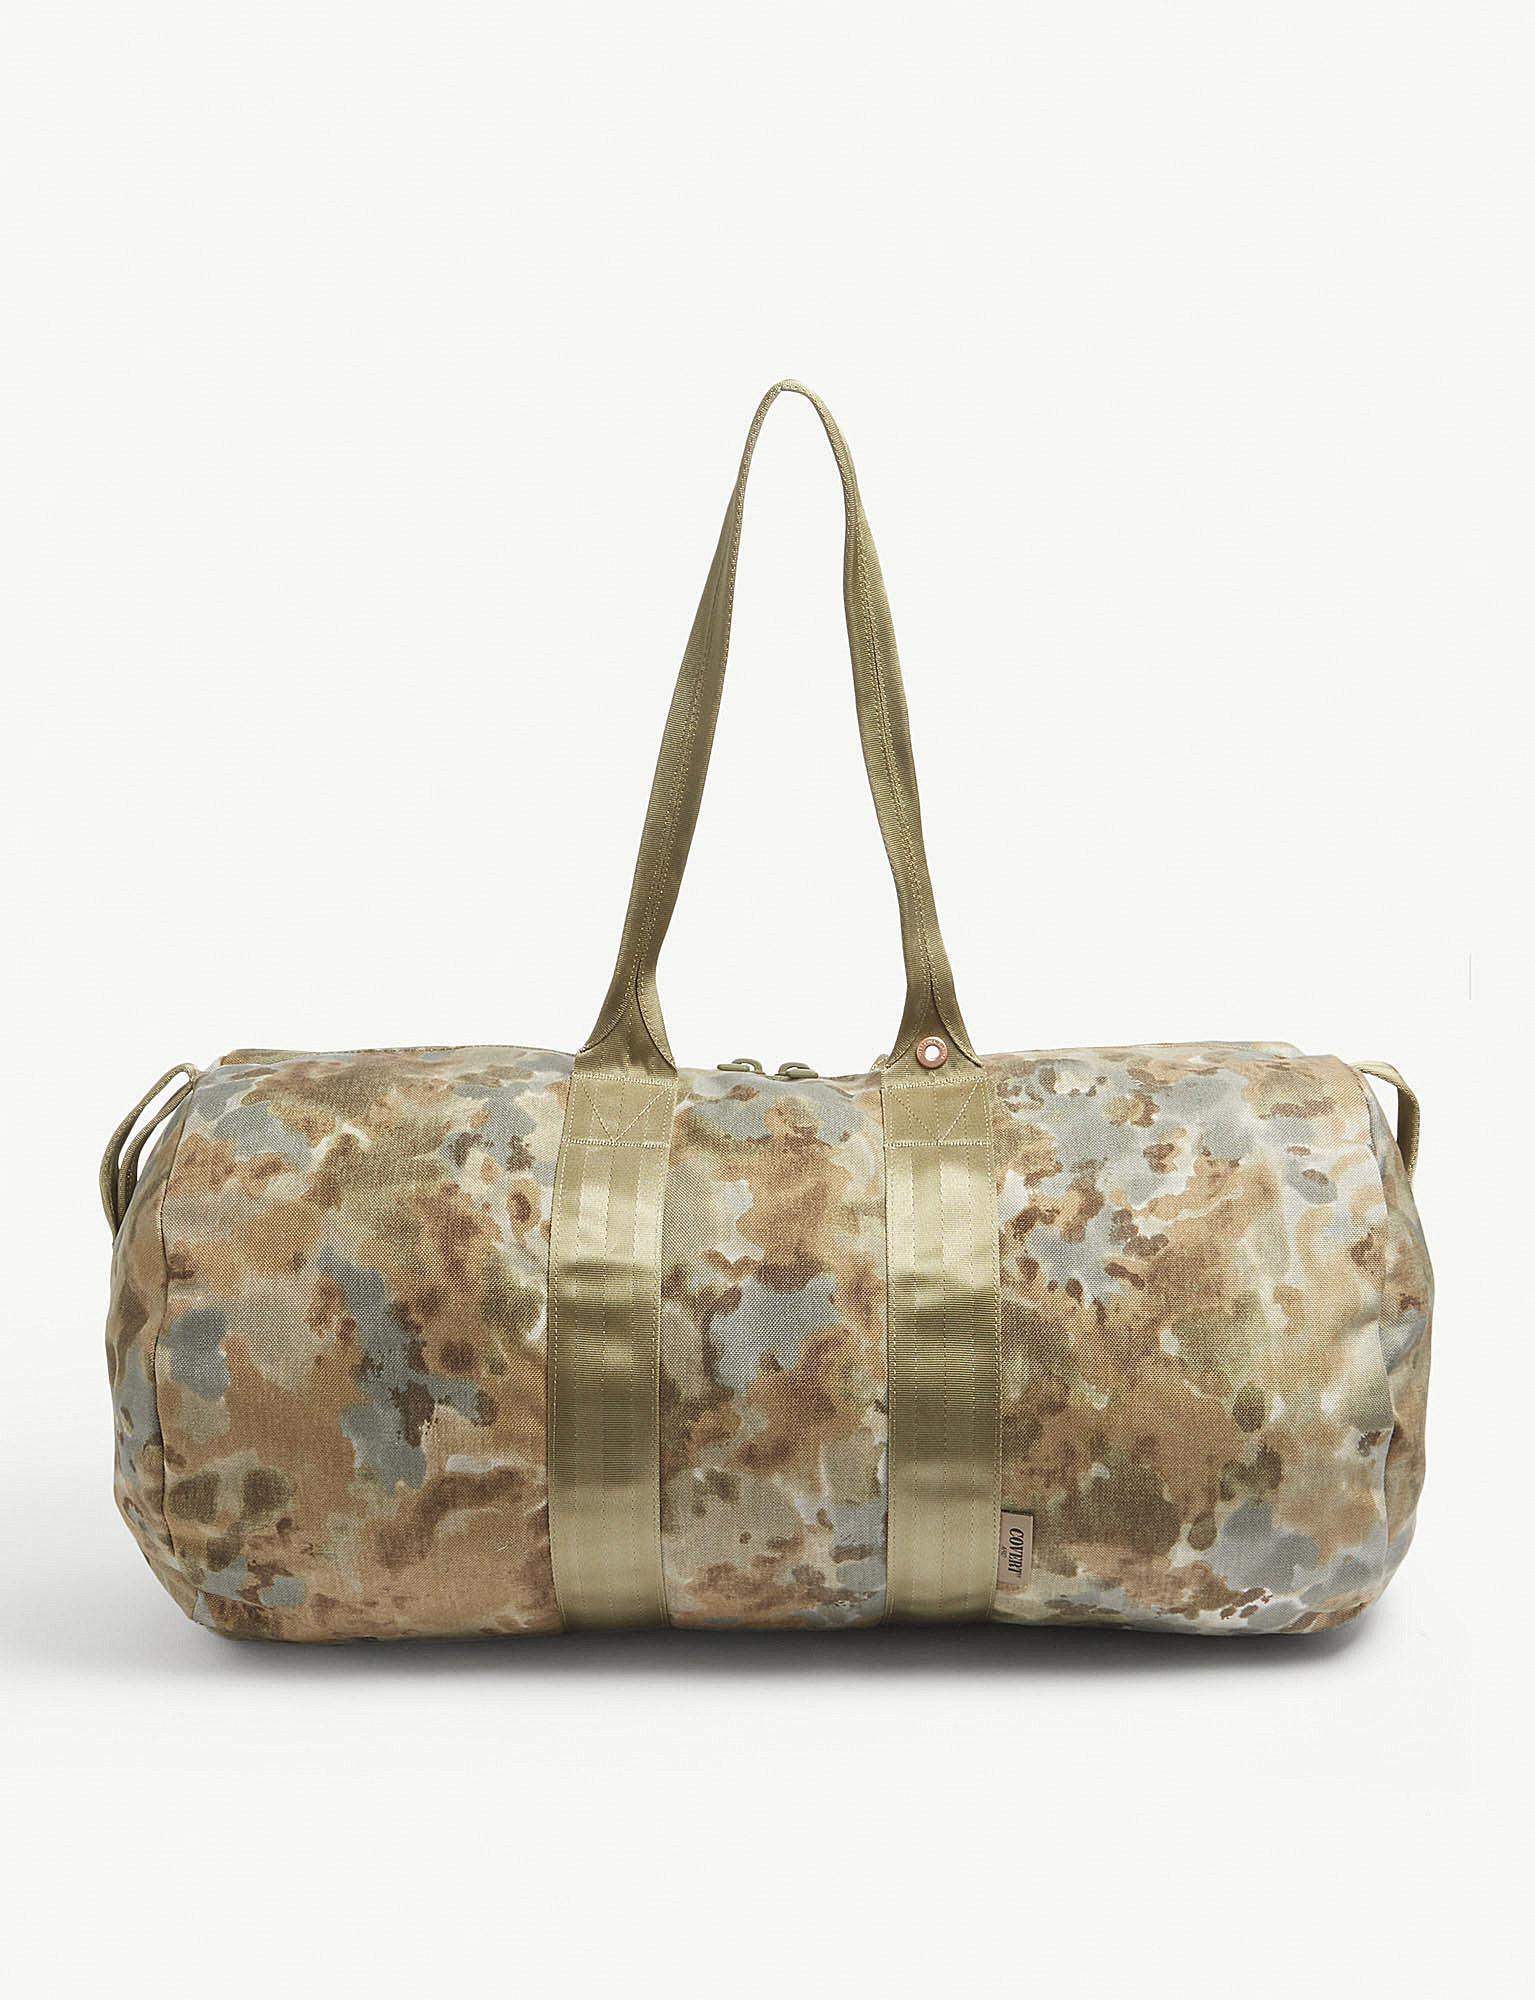 f480b2d607a5 Herschel Supply Co. Bhw H-446 Camouflage Duffle Bag in Metallic for ...